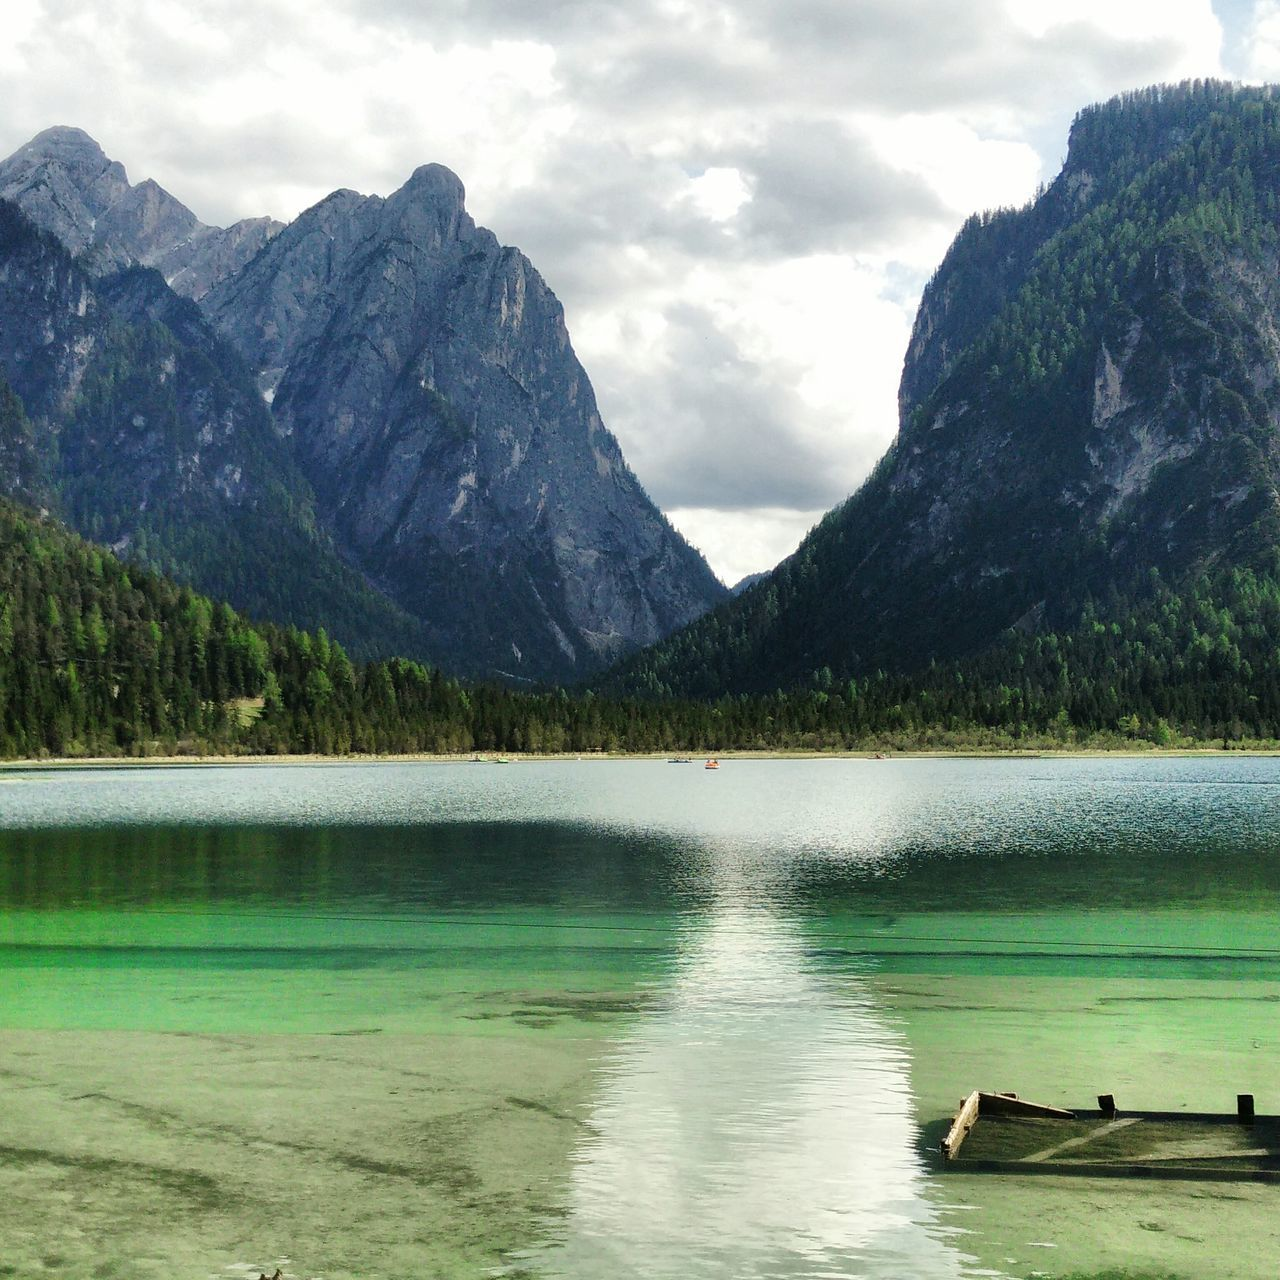 Scenic Landscape With Lake In Mountains